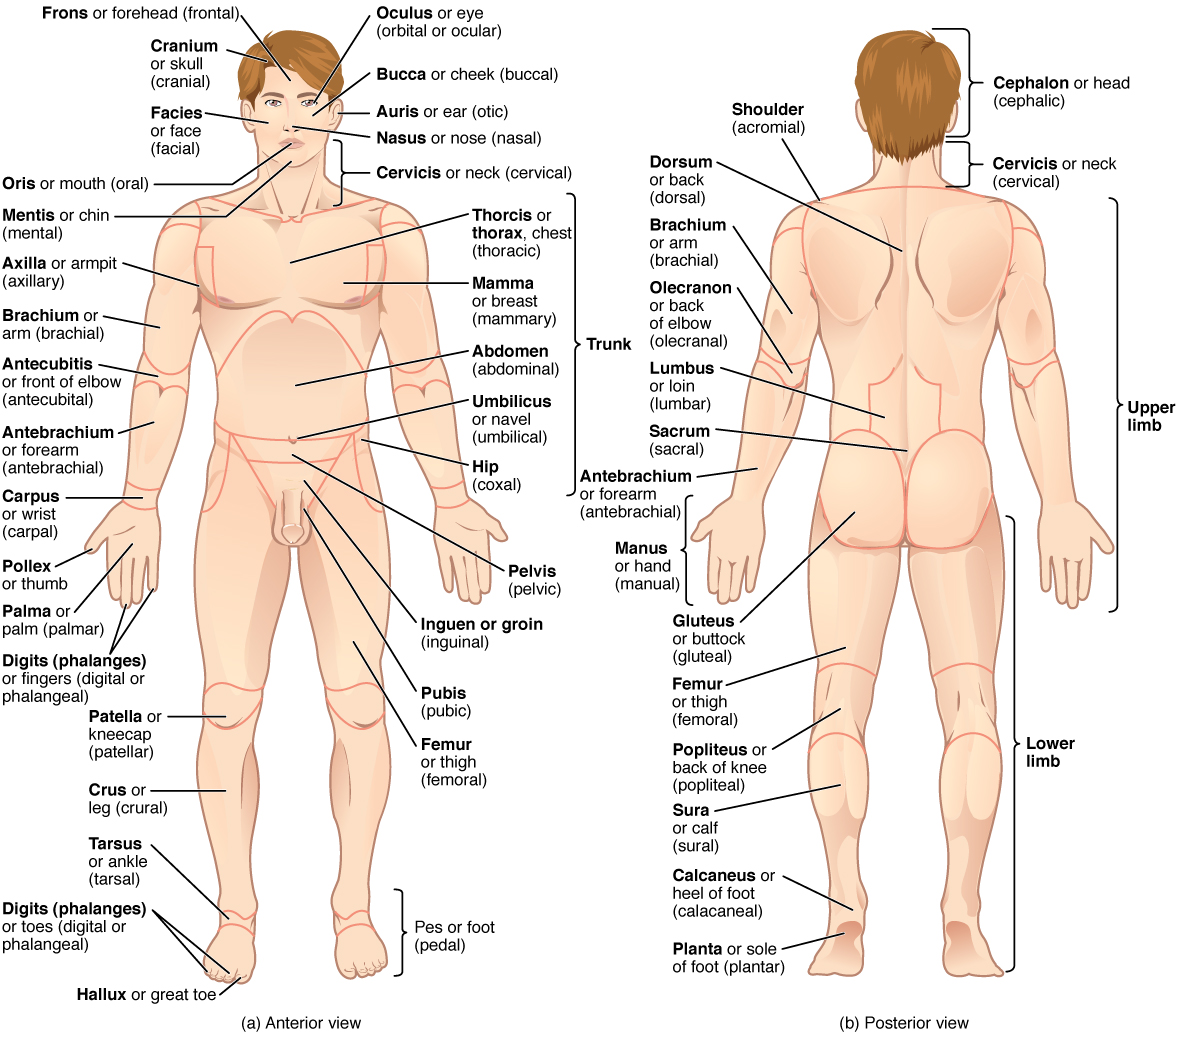 Language of Anatomy | Anatomy and Physiology